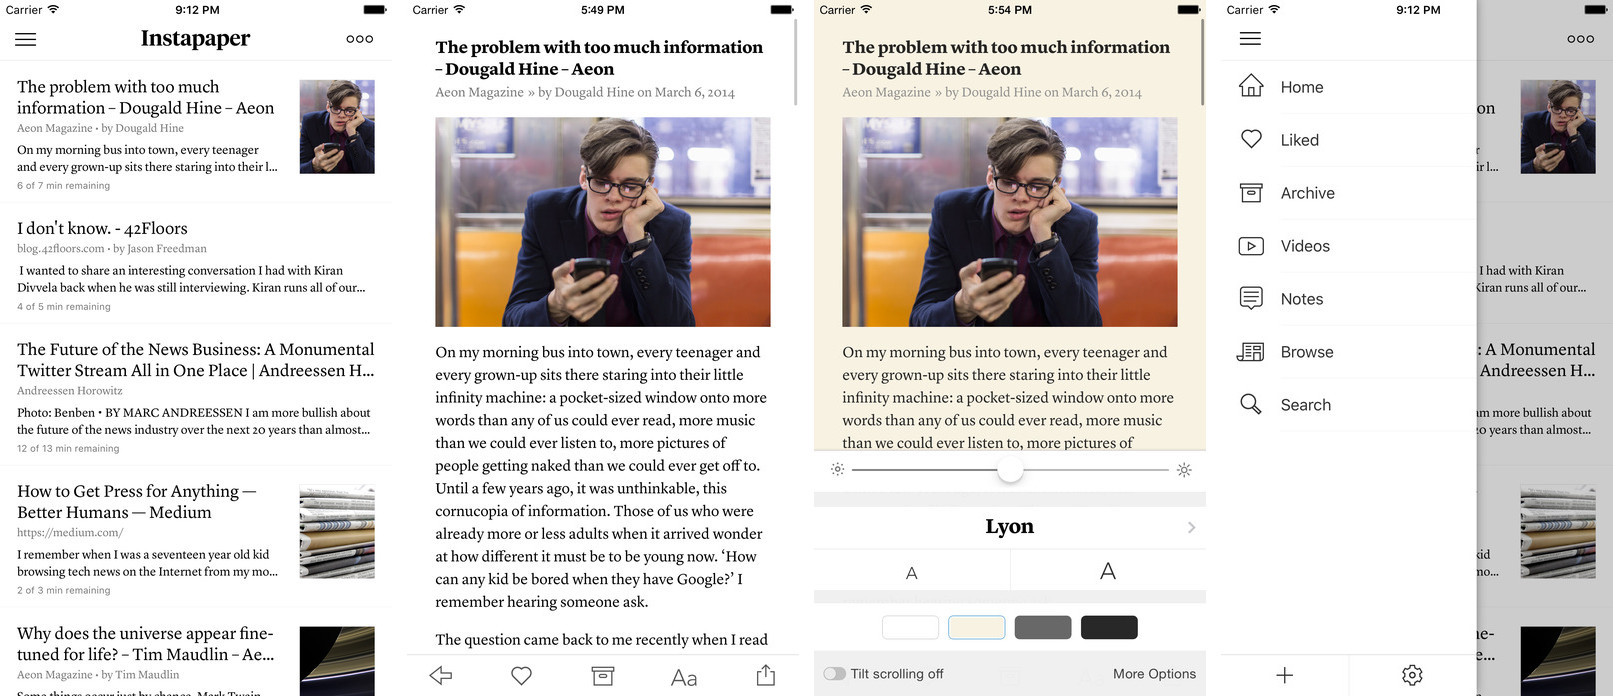 Instapaper 7.1.2 for iOS iPhone screenshot 001